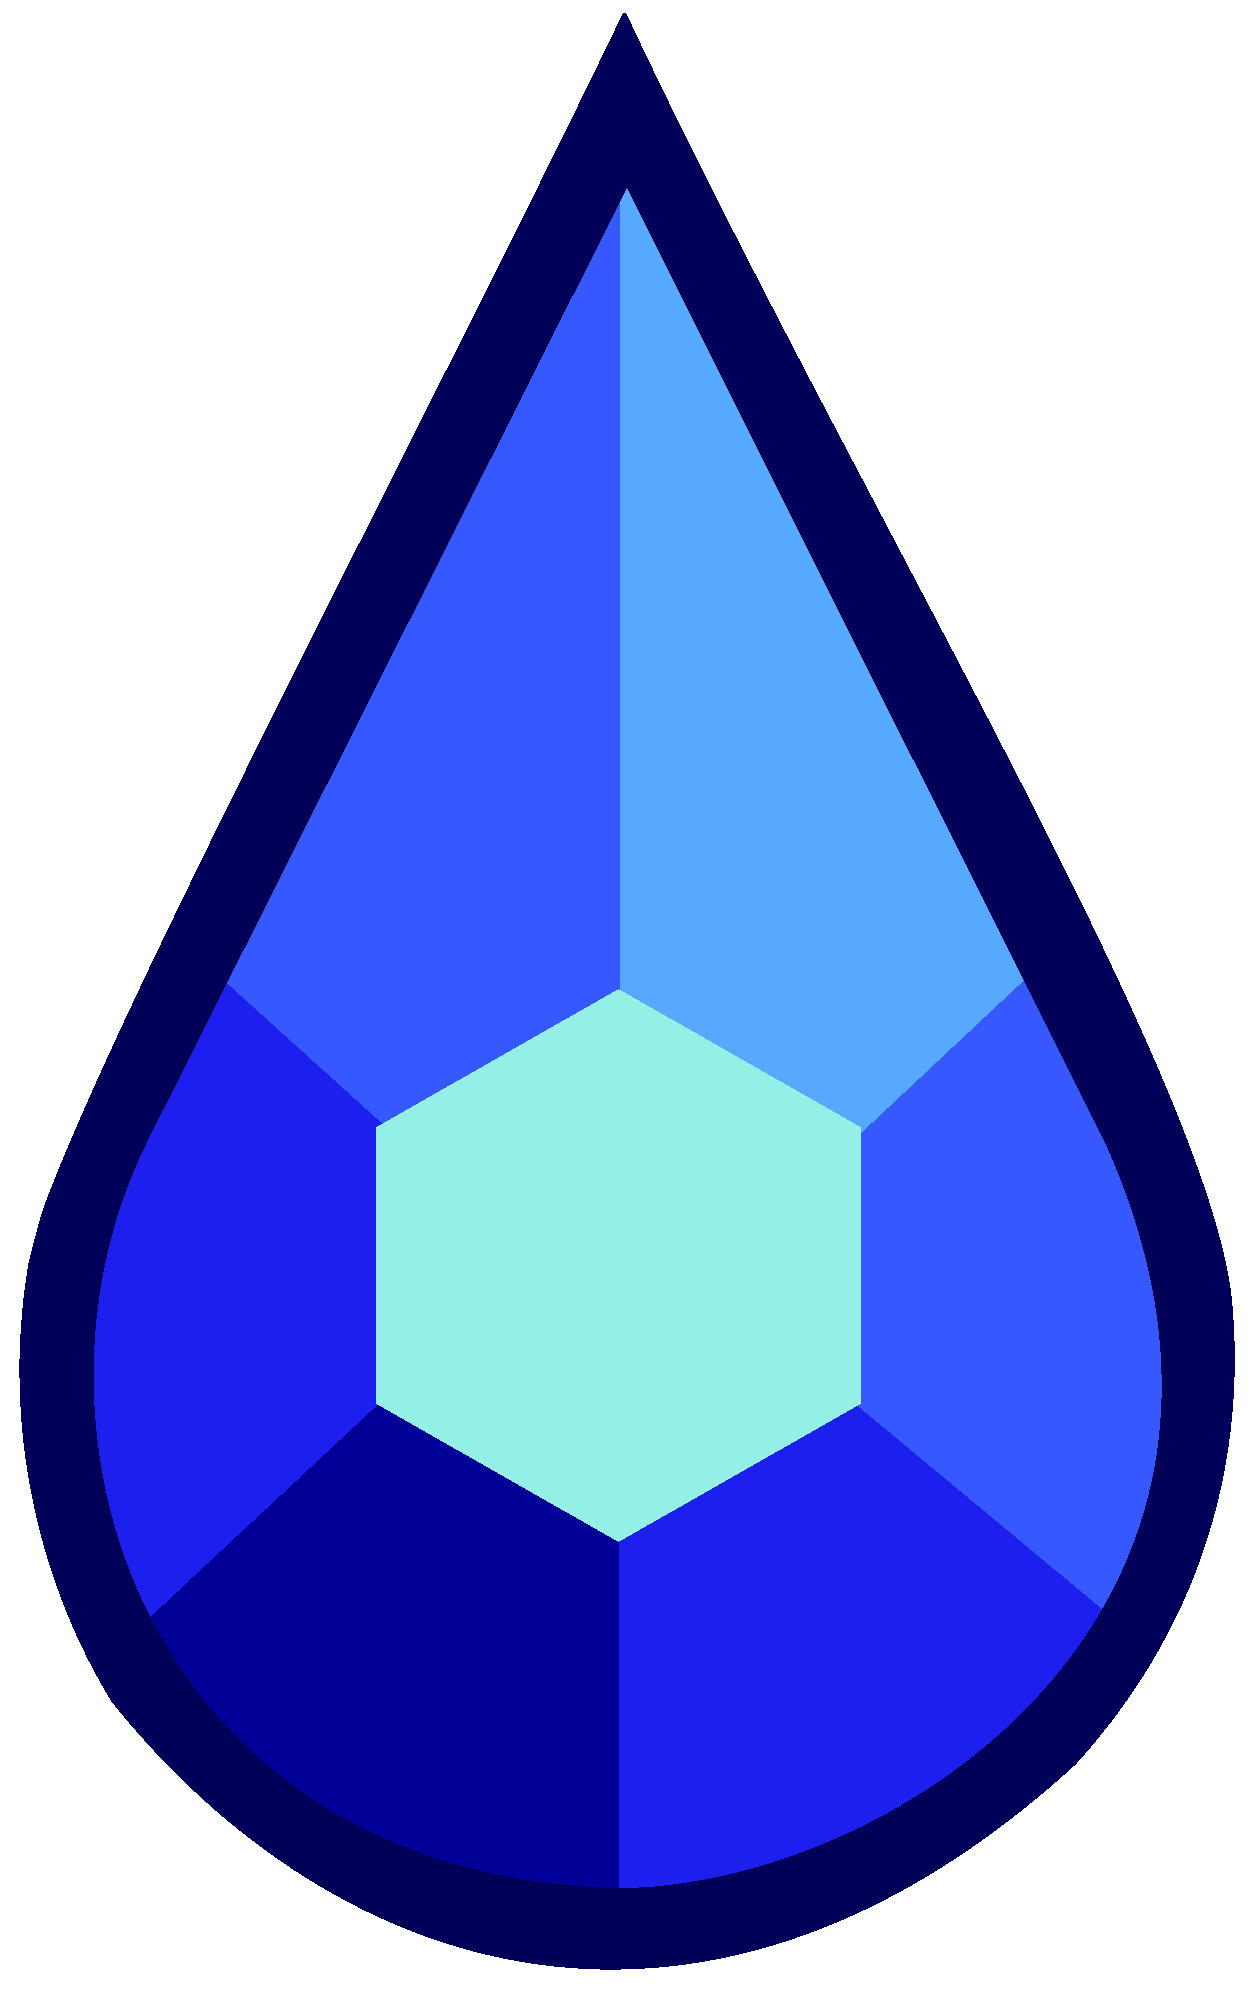 Image alternate sapphire png. Gem clipart triangle